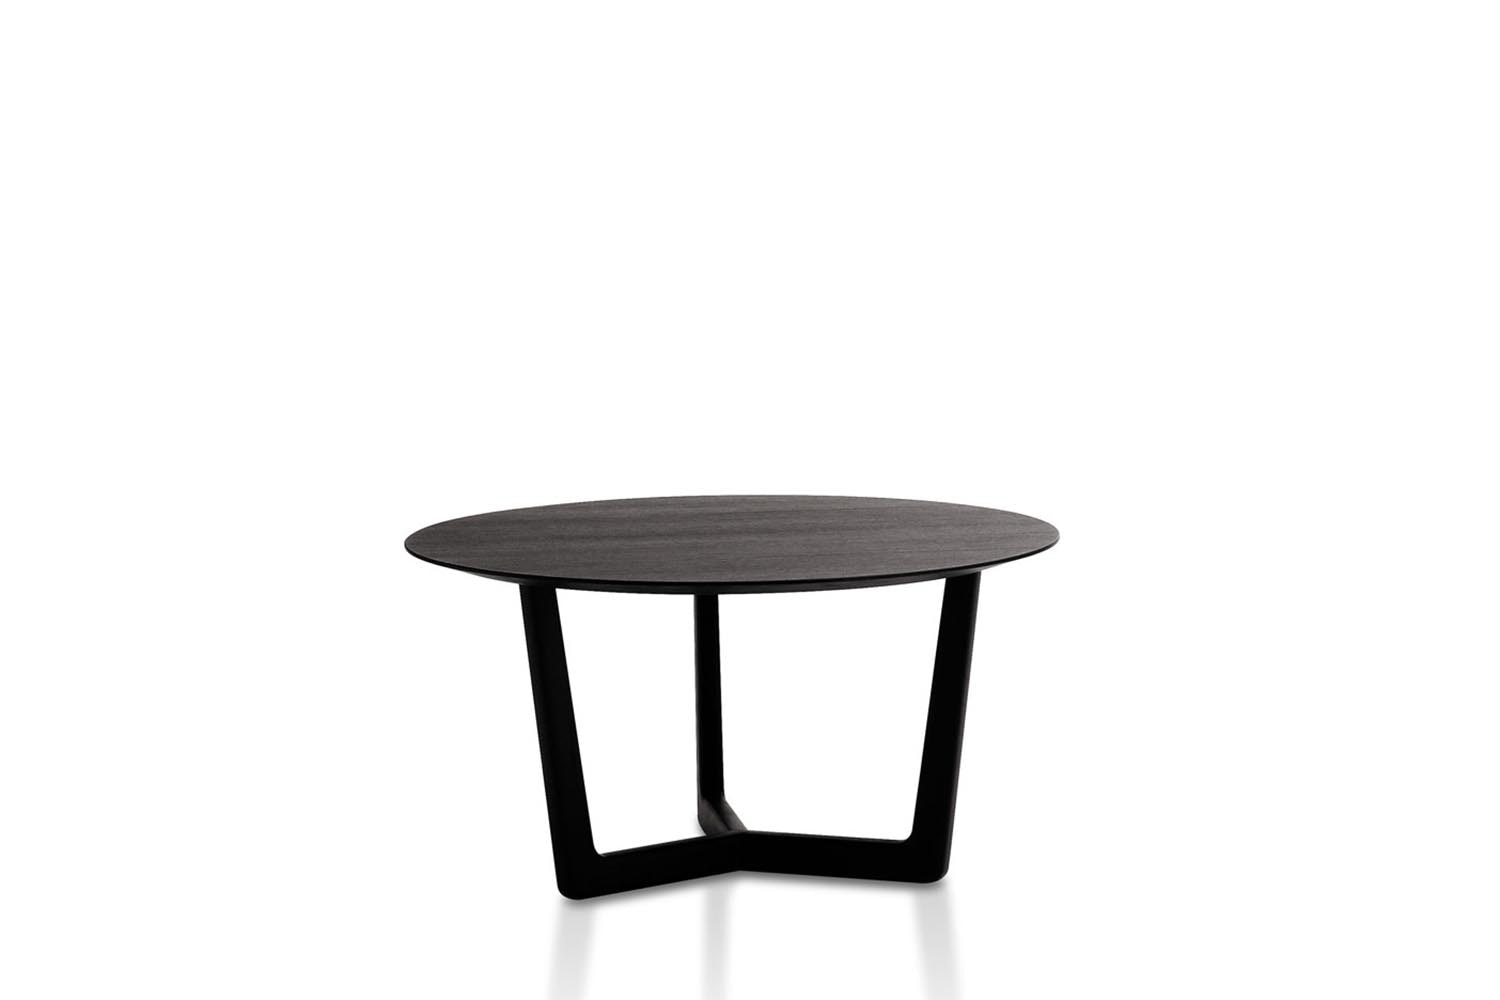 Shahan Coffee Table by Christophe Pillet for Porro